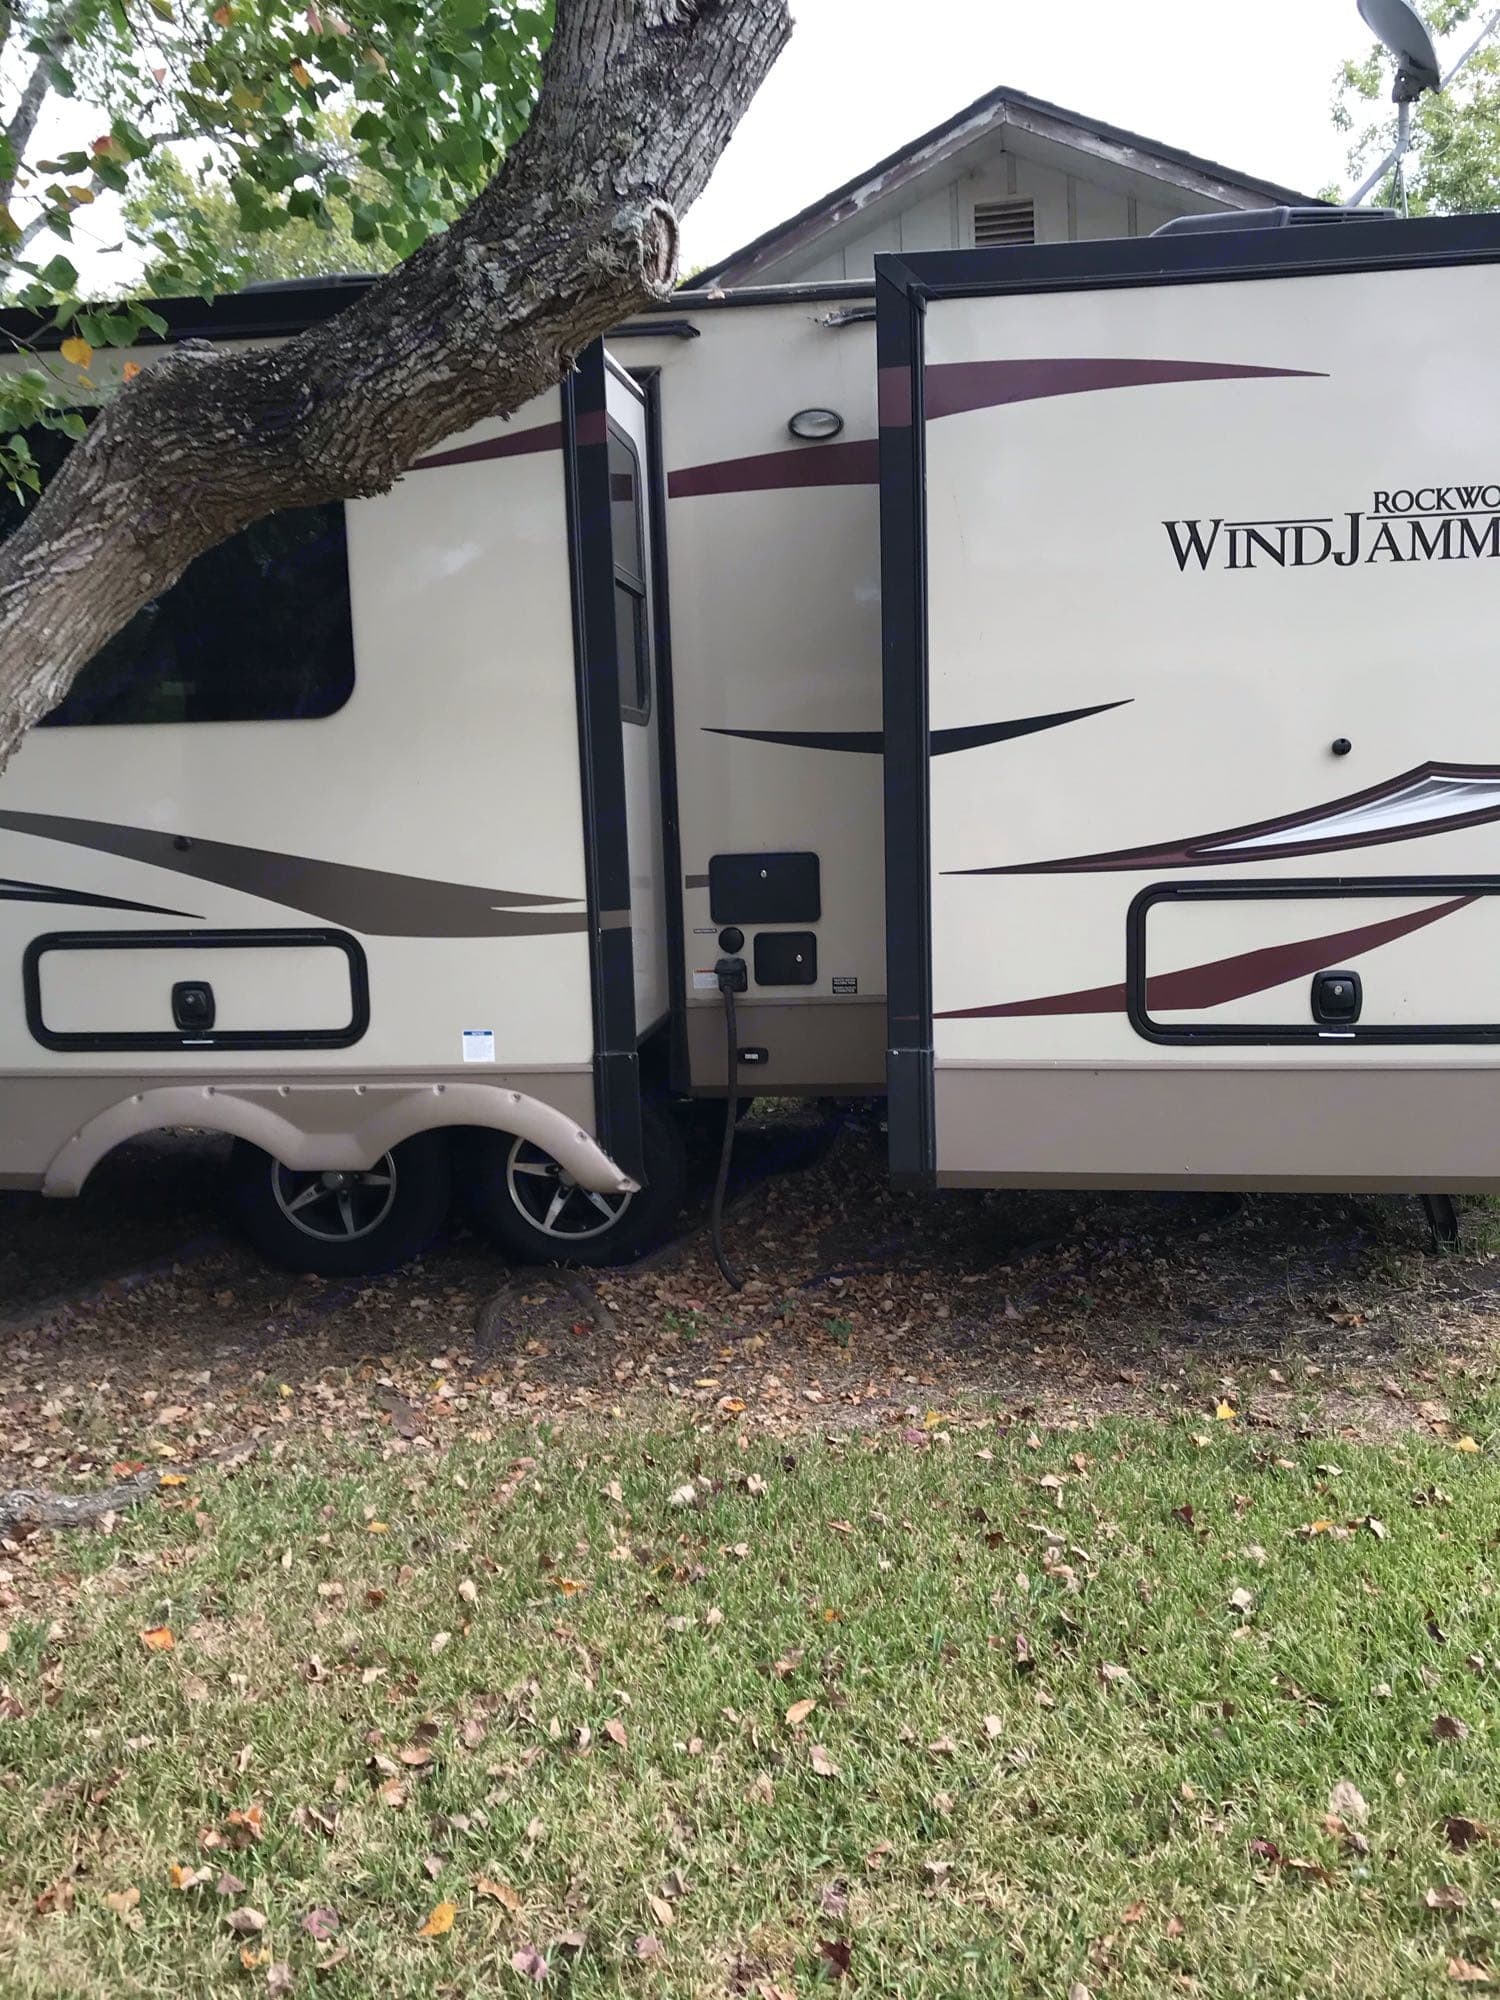 storage for table, chairs, rugs, sewage line tubing, wheel blocks. Forest River Rockwood Windjammer 2018